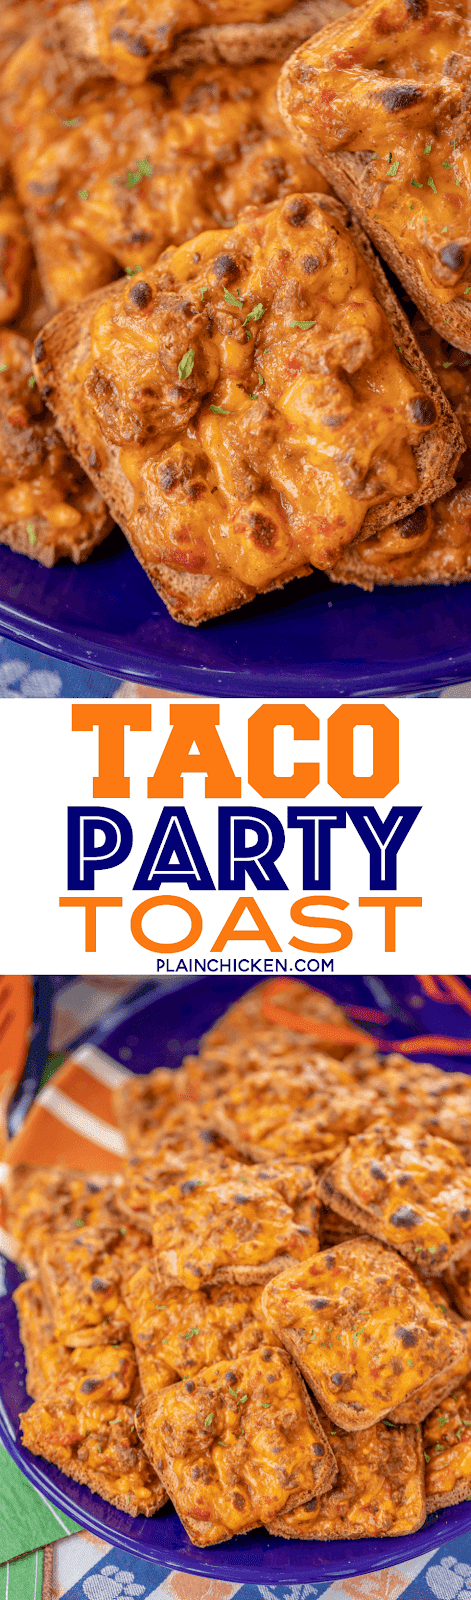 Taco Party Toasts - only 5 ingredients!! Seriously delicious! I took these to a party and they were gone in a flash. Ground beef, taco seasoning, diced tomatoes and green chiles, Velveeta cheese and party rye bread. Can make ahead of time and freezer for later. Great for any occasion - parties, tailgating or a quick lunch or dinner. Taco night was never so fun! #appetizer #taco #tailgating #partyfood